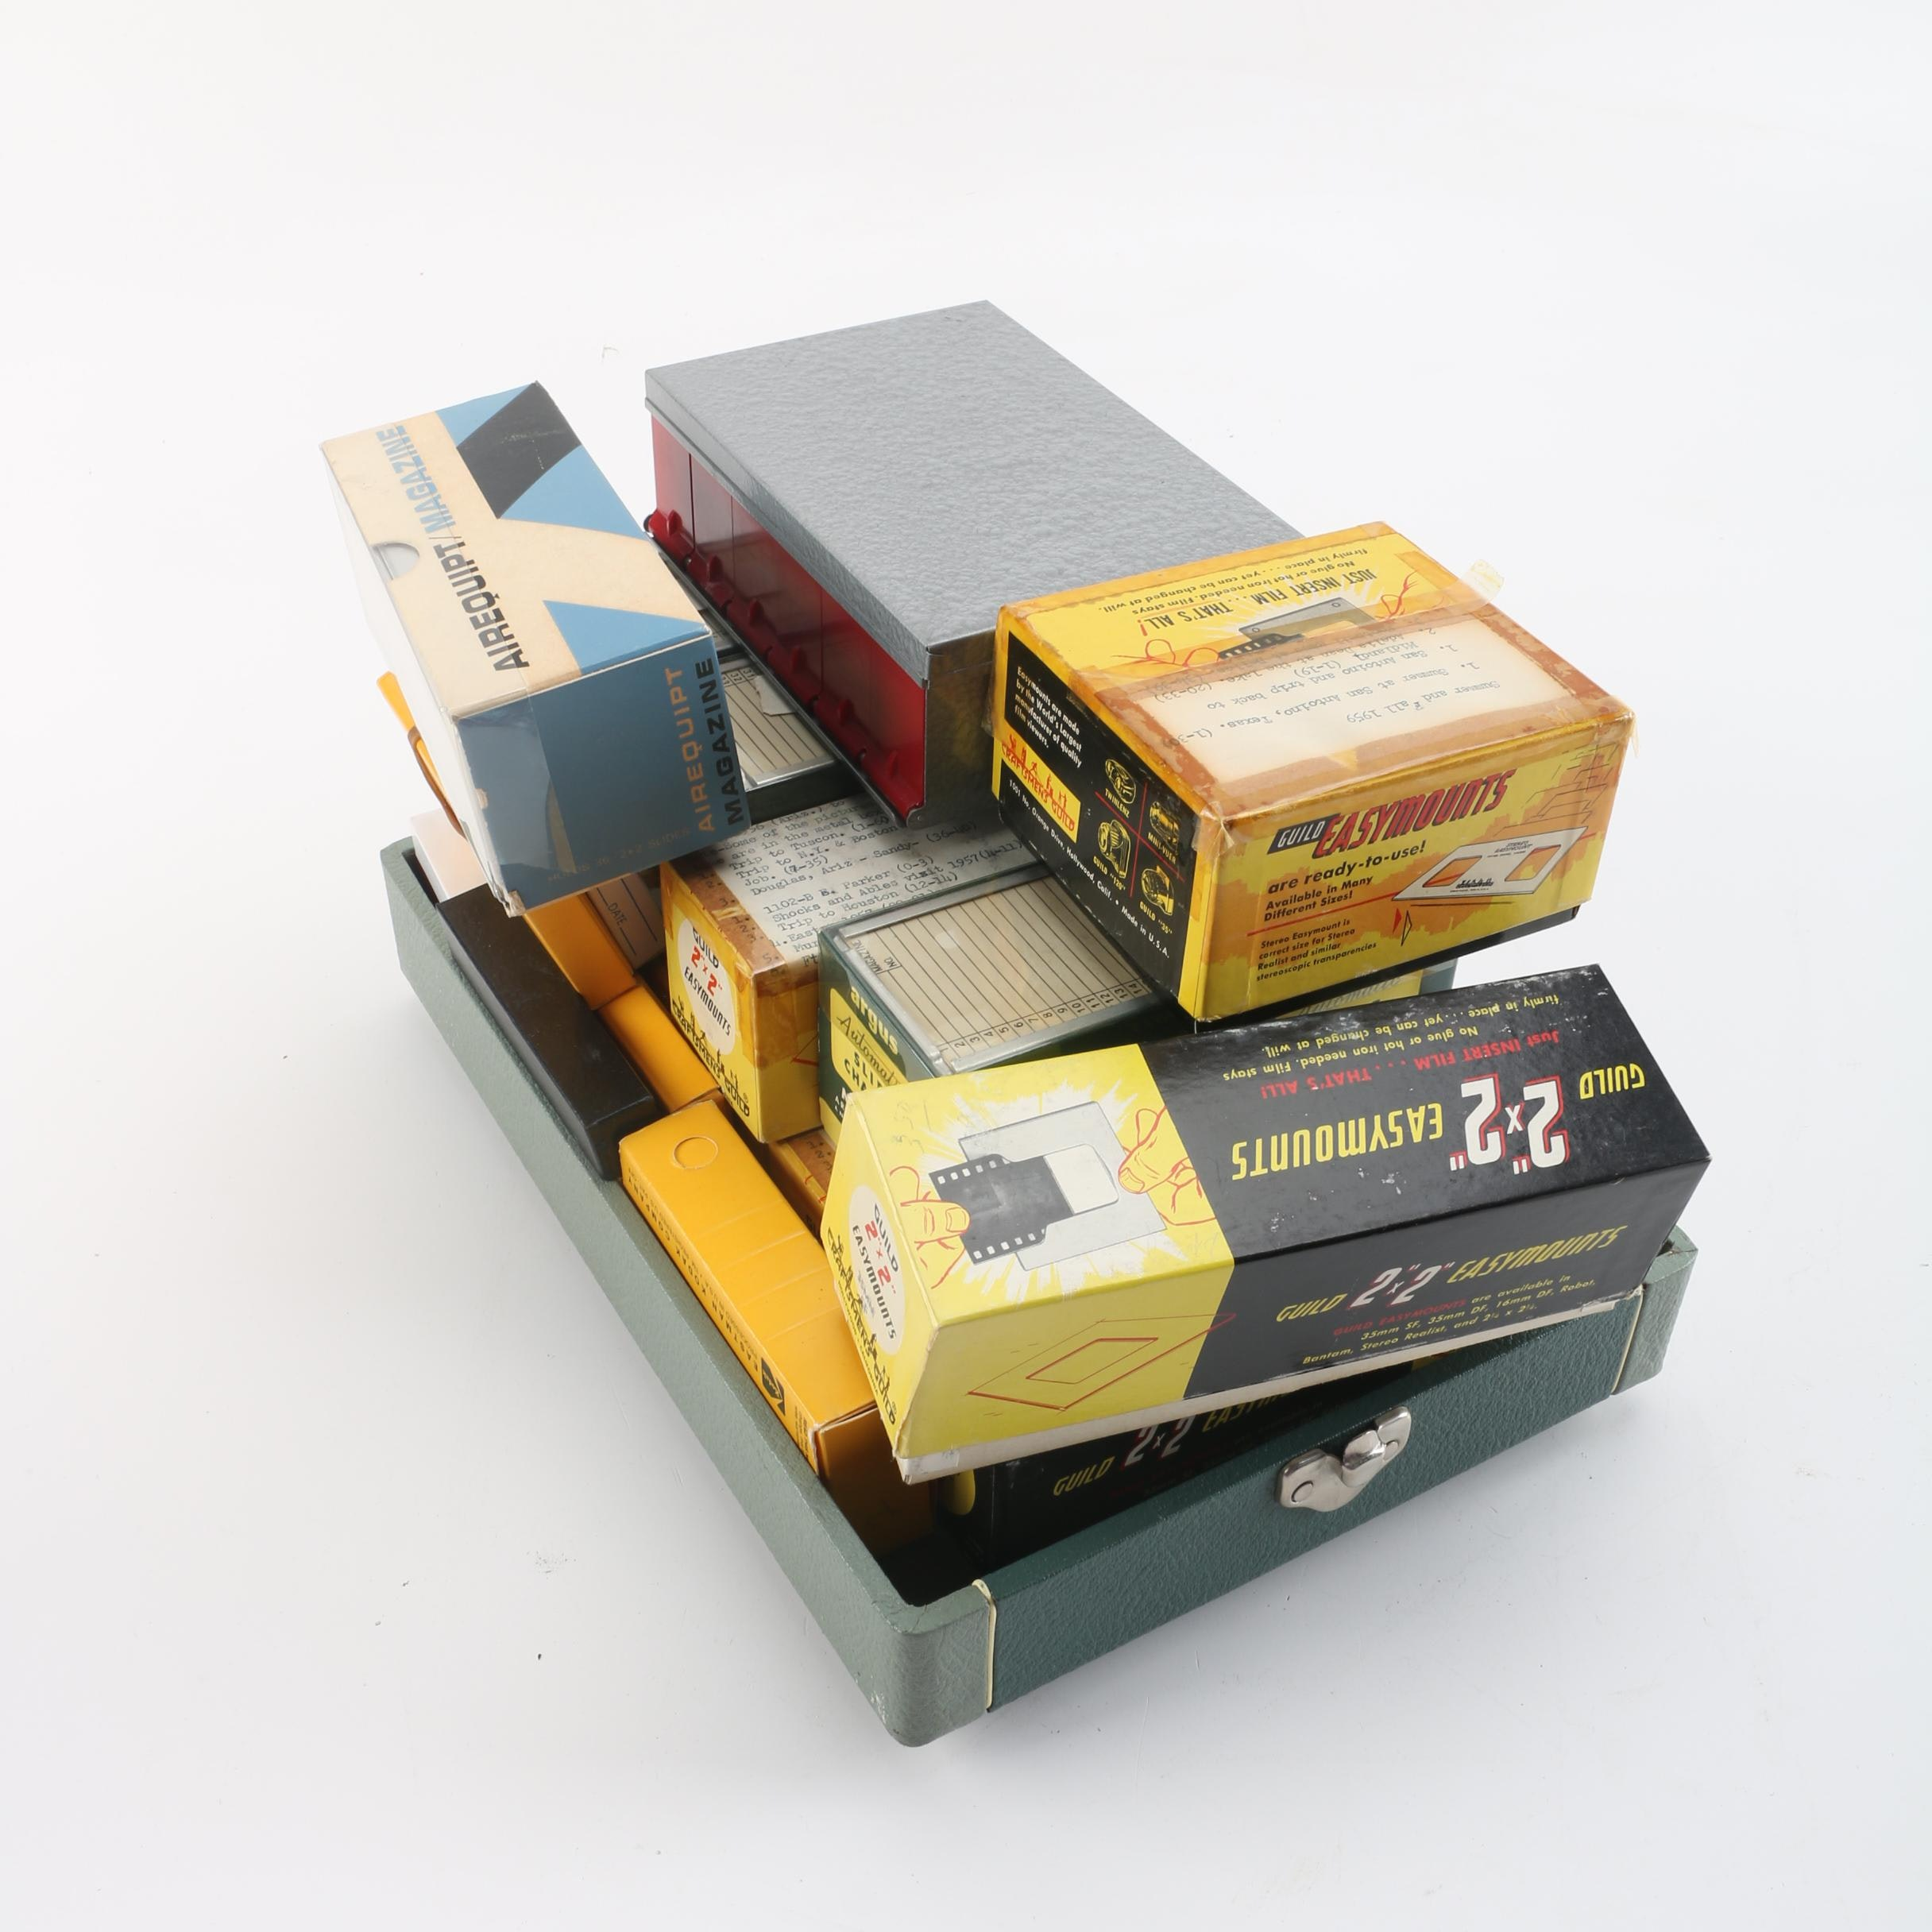 Family Photo Travel Slides with Slide Changer Magazines and Hard-Sided Case